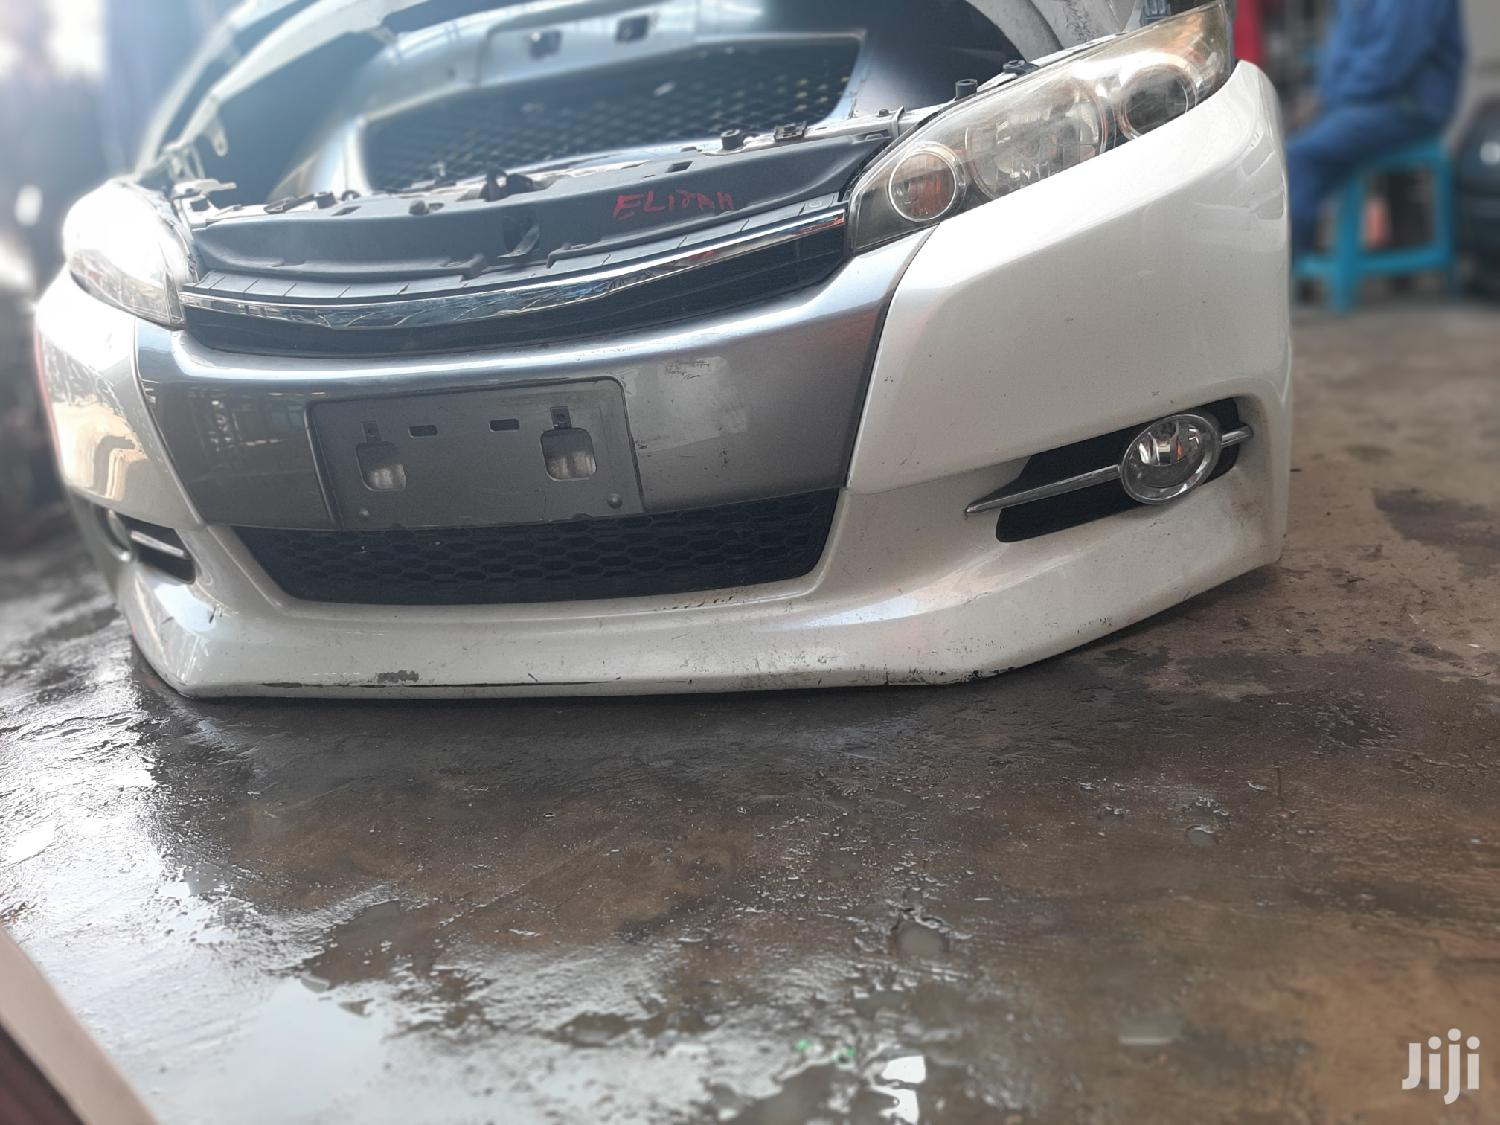 Dent Free Toyota Wish 2014 Xenon Nosecut Auto Car Body Parts | Vehicle Parts & Accessories for sale in Nairobi Central, Nairobi, Kenya